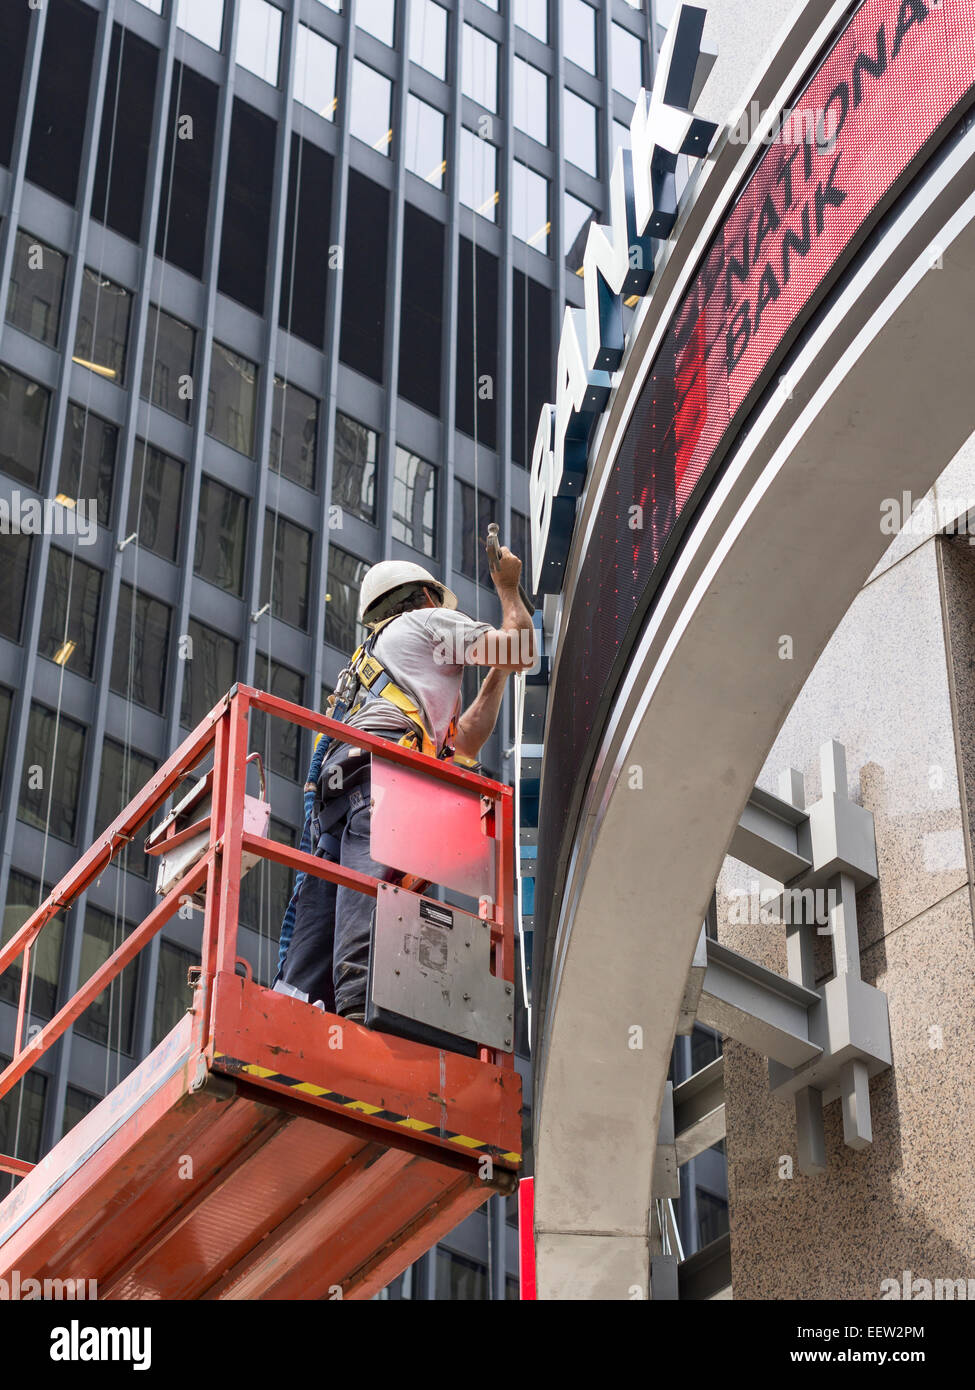 Bank Repair . A worker wields a hammer as he works on the repair or installation of a sign in front of a bank. Downtown, - Stock Image